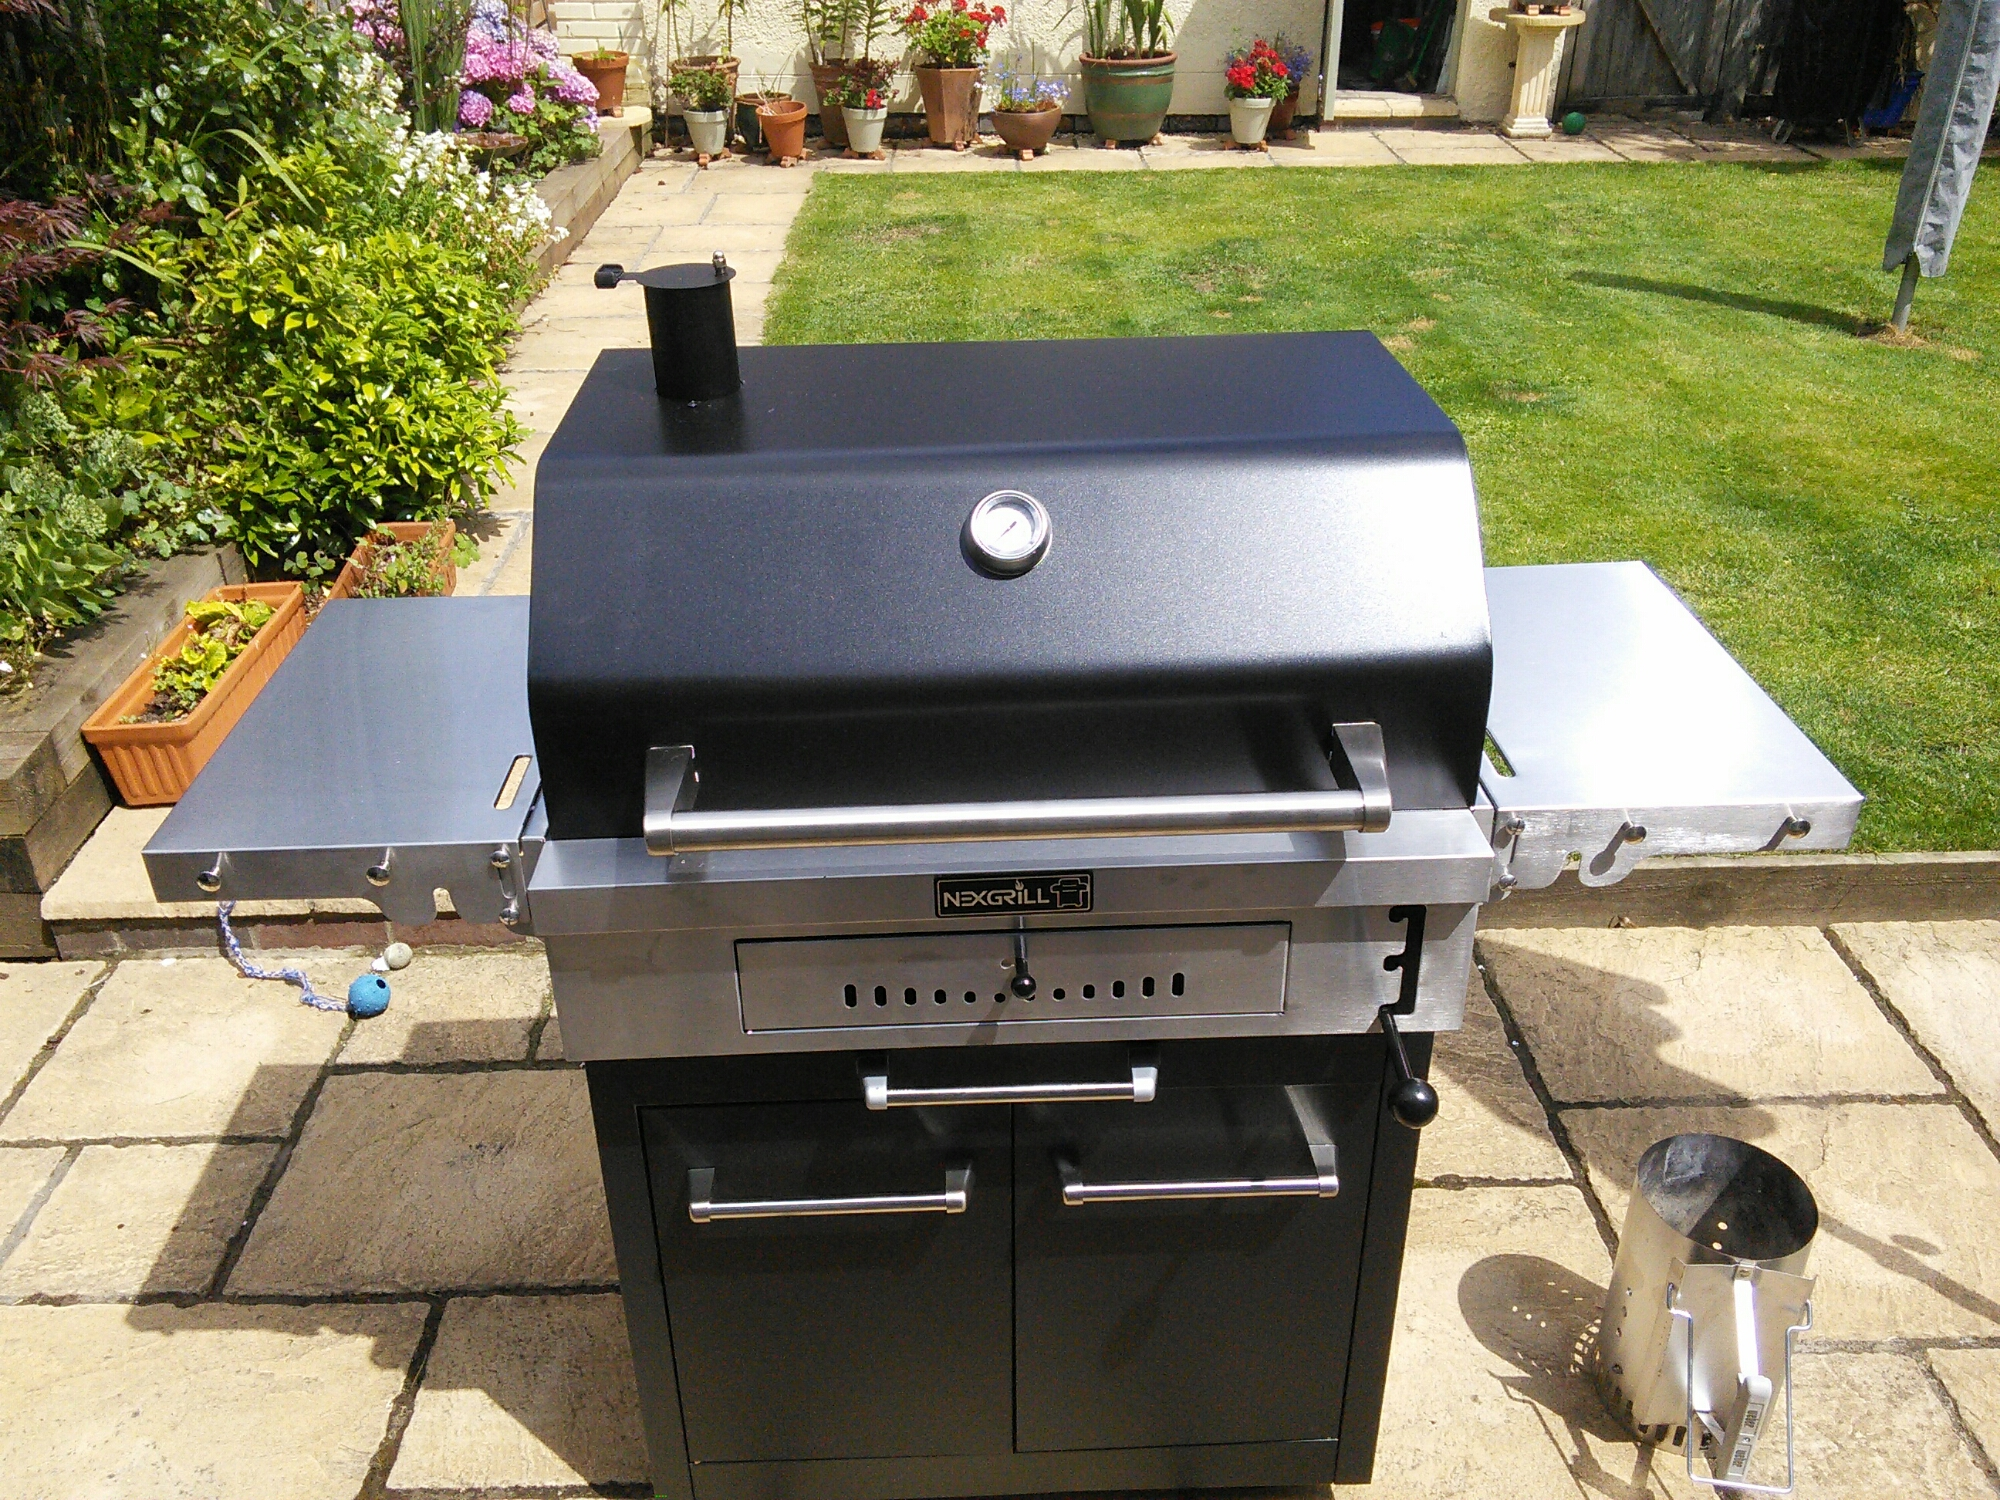 Bbq behemoth my new nexgrill charcoal grill updated for Modern barbecue grill